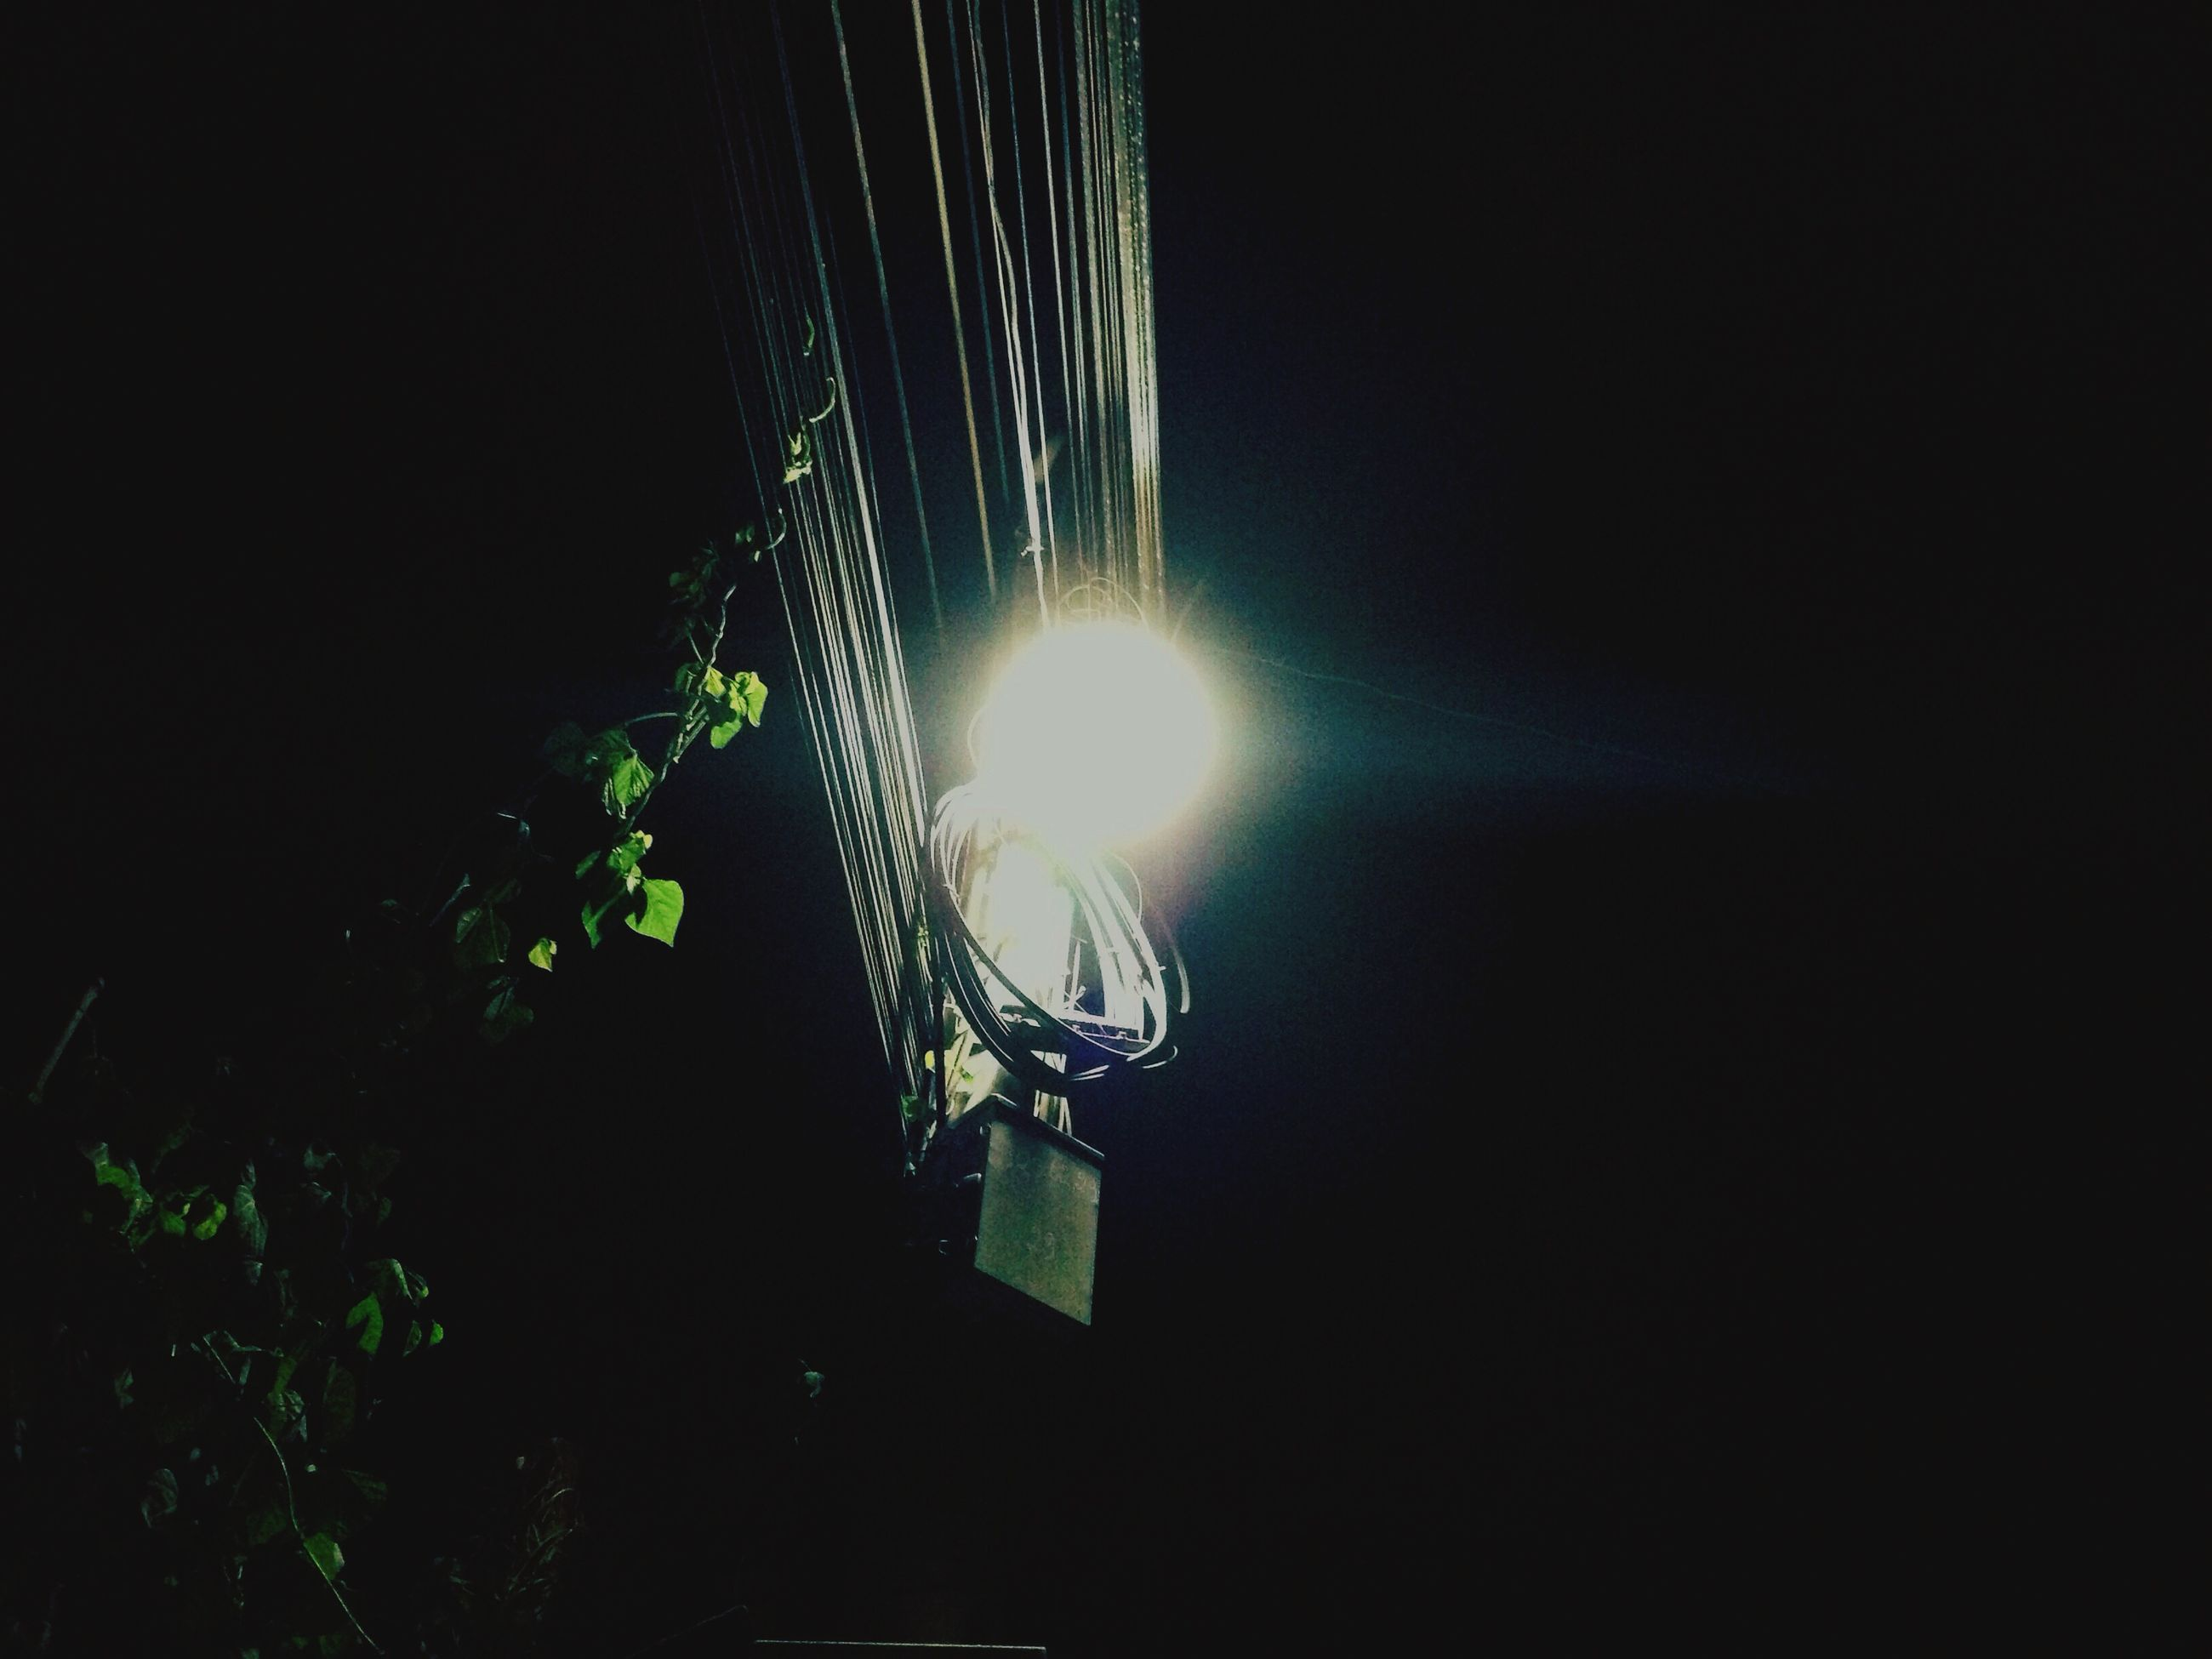 illuminated, night, low angle view, lighting equipment, glowing, electricity, light - natural phenomenon, electric light, dark, no people, hanging, electric lamp, copy space, street light, decoration, sky, light, technology, light bulb, outdoors